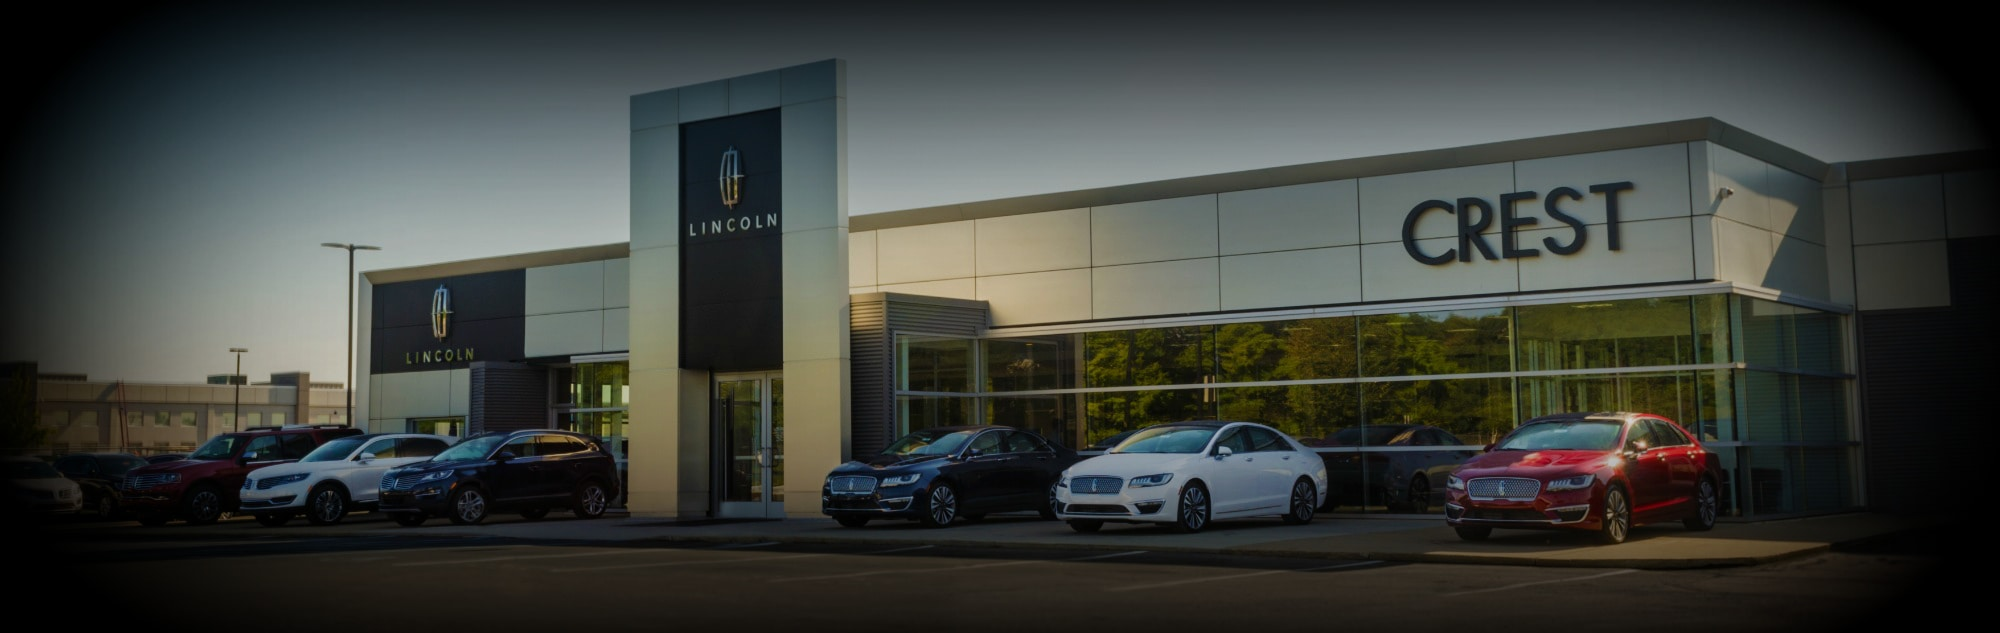 new valley htm vista dealership in lincoln ca dealer used simi ford